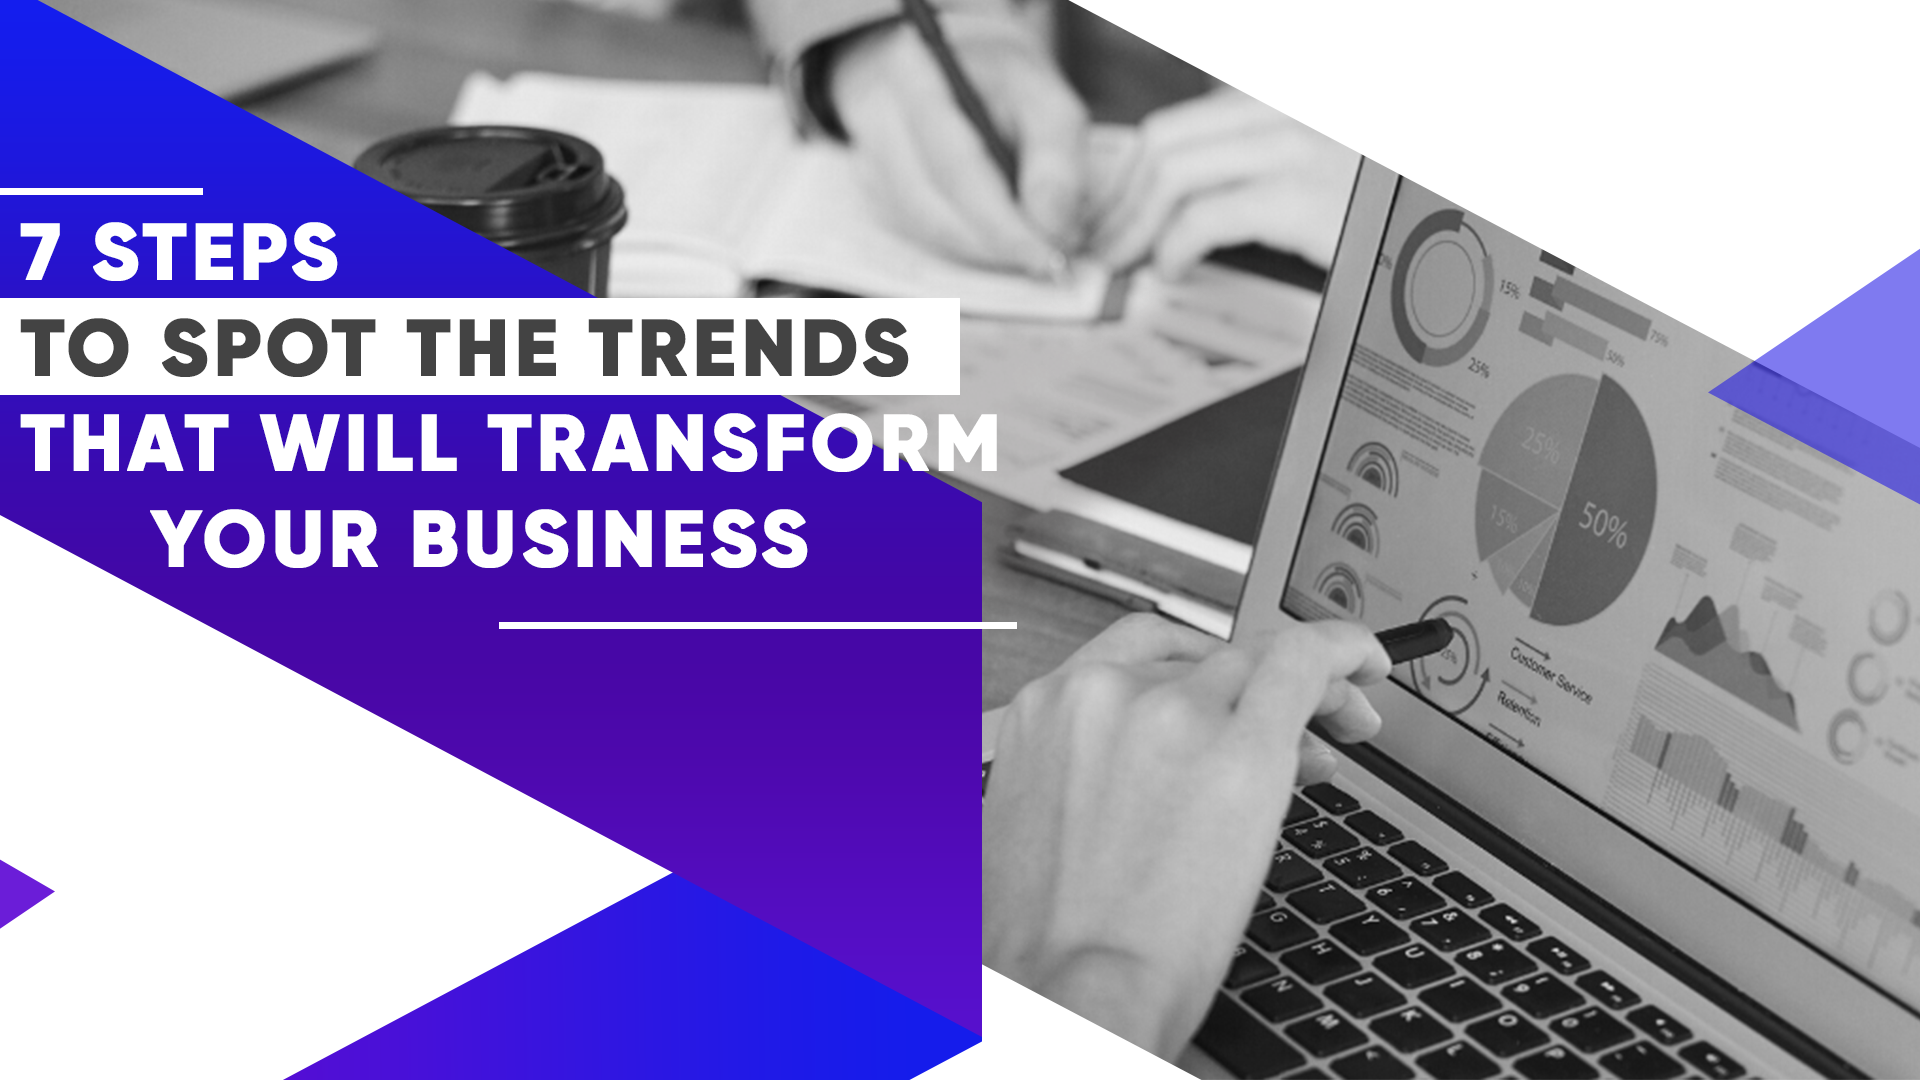 7 Steps to Spot the Trends that Will Transform Your Business